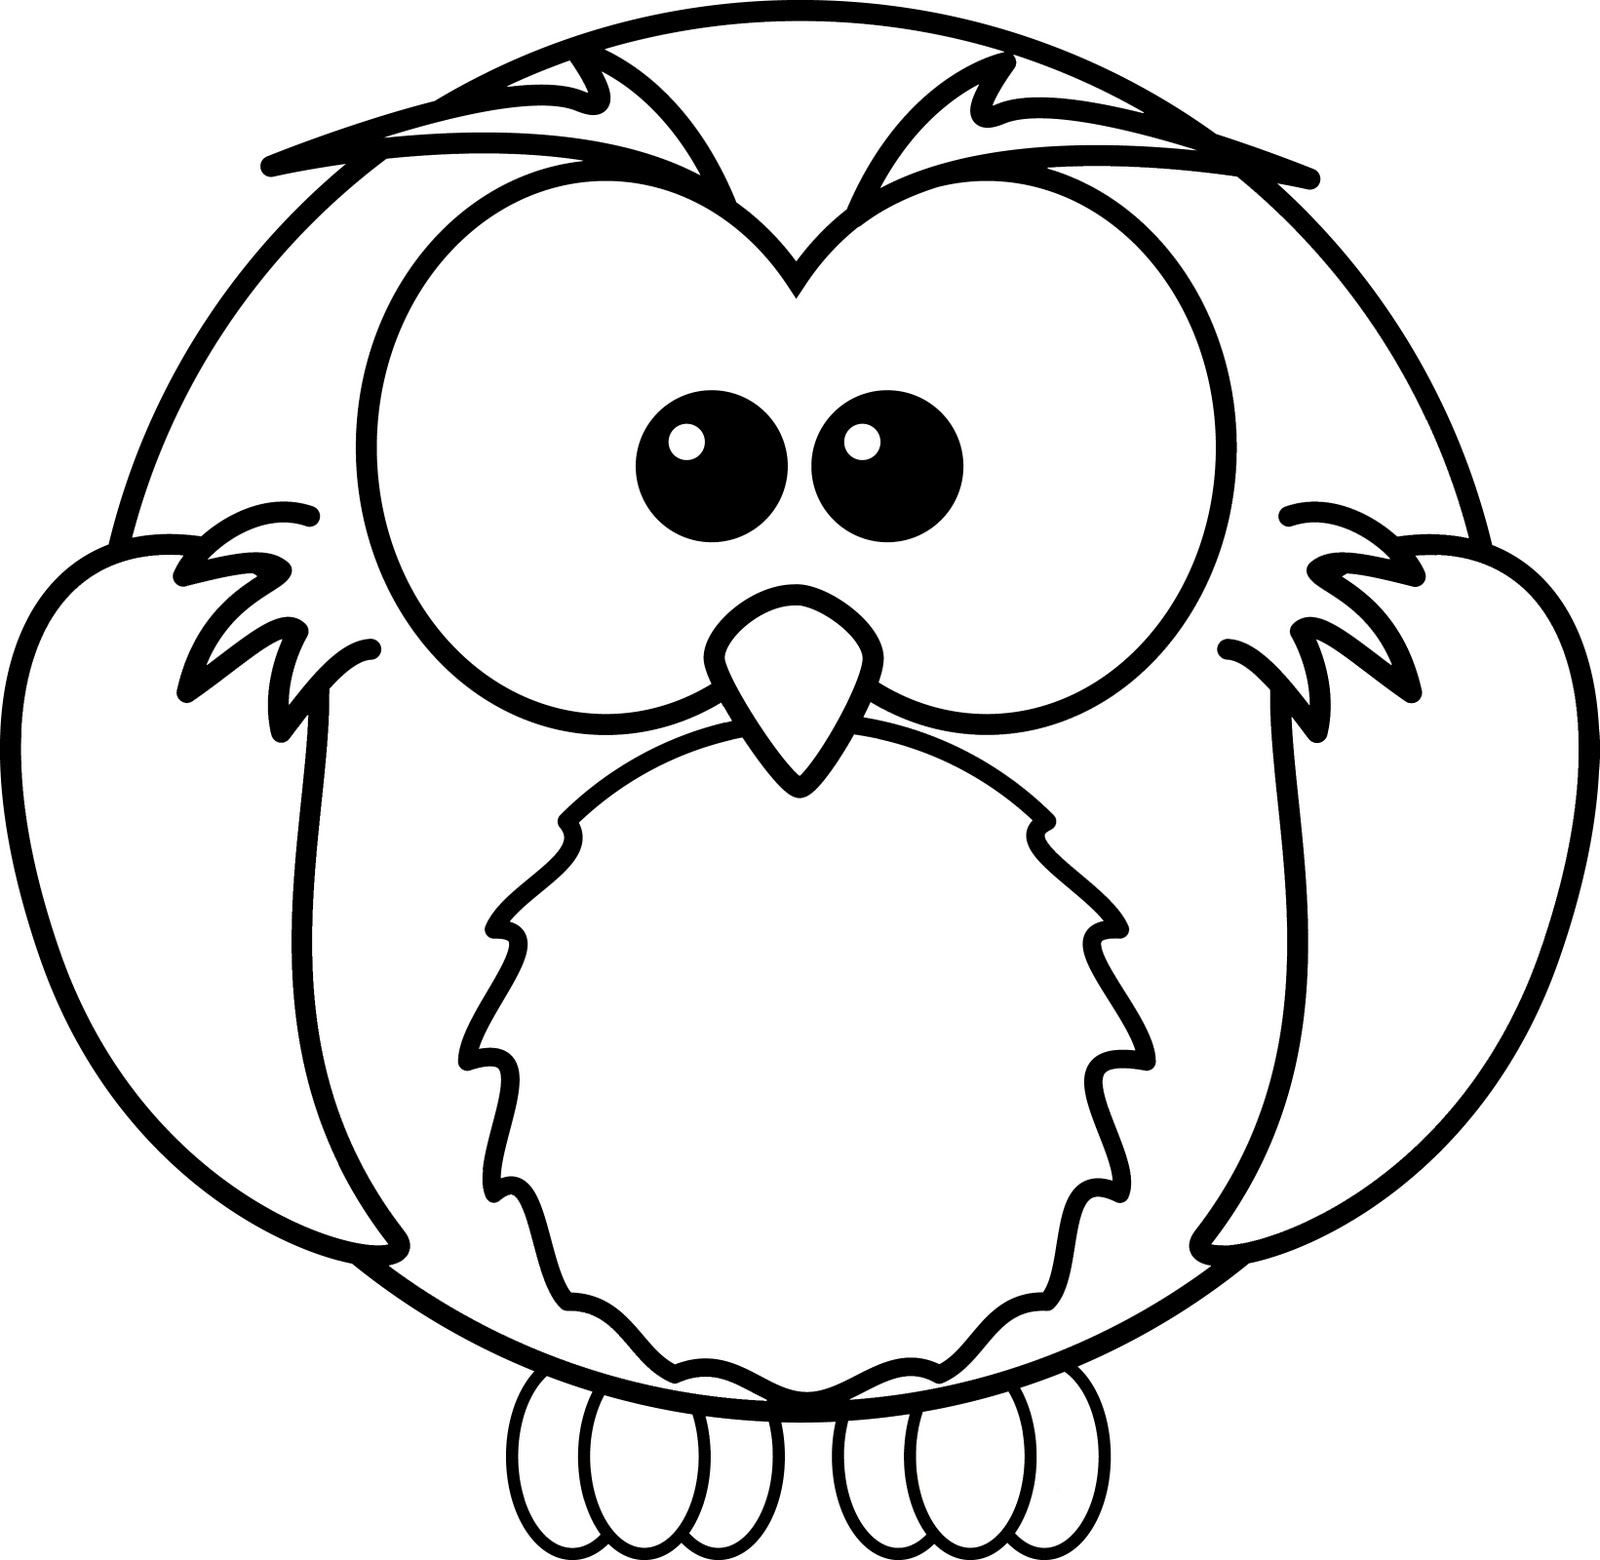 colouring picture of owl owl coloring pages for adults free detailed owl coloring owl picture of colouring